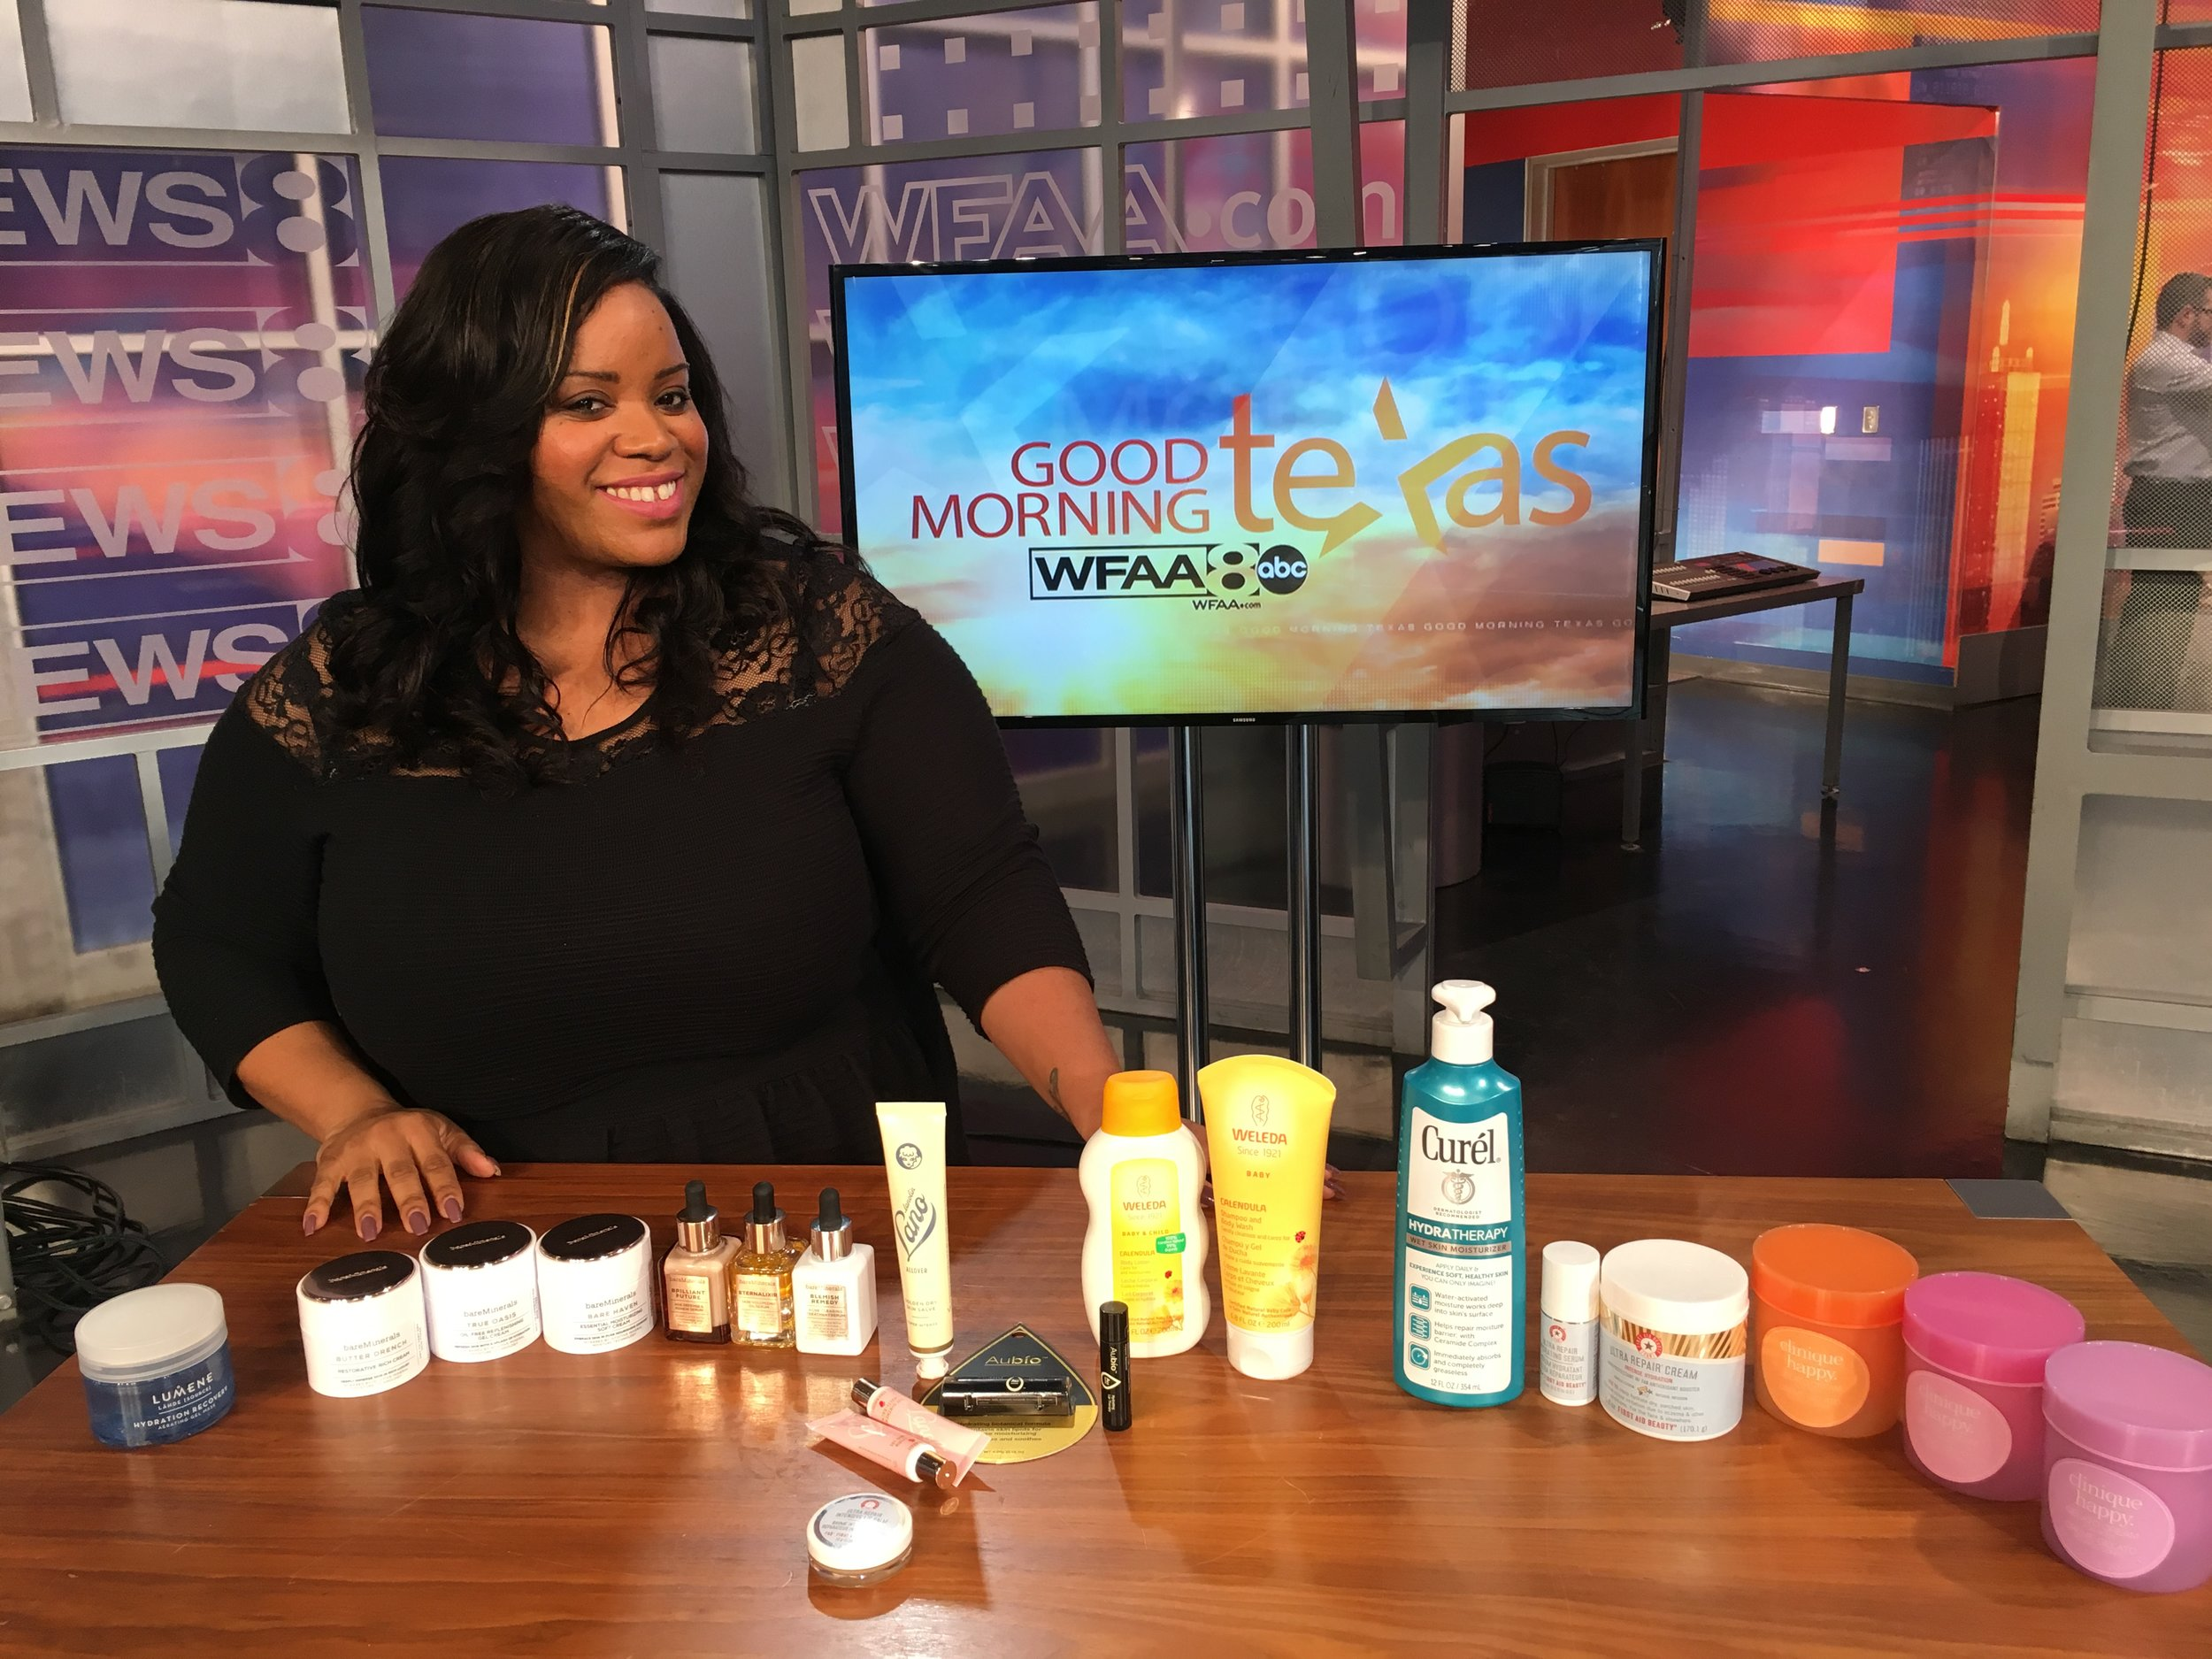 Join me on my latest 'Good Morning Texas' segment as I discuss the latest in beauty and skincare to keep your skin moisturized and hydrated during the Winter months. Click  here  for the segment